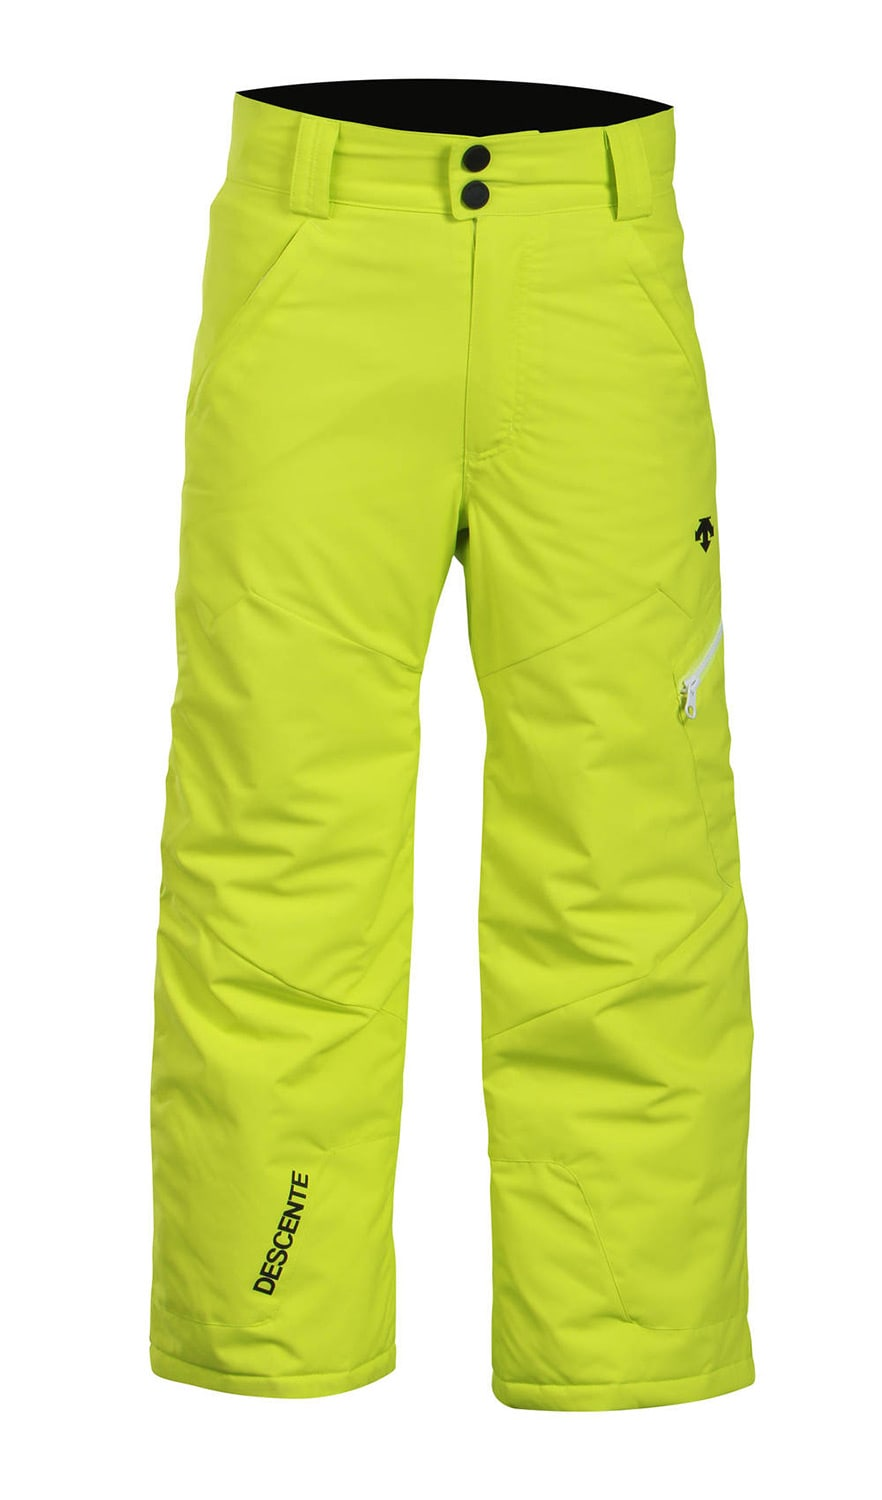 Product - Swiss Tech Boys Snow Pant. Product Image. Price $ Product Title. Swiss Tech Boys Snow Pant. Product - Swiss Tech Girls' Snow Ski Pant. Product Image. Price $ Product - Women's Mossi Synergy Snowmobile Bibs Snow Pants Winter Weatherproof Waterproof. Reduced Price. Product Image.